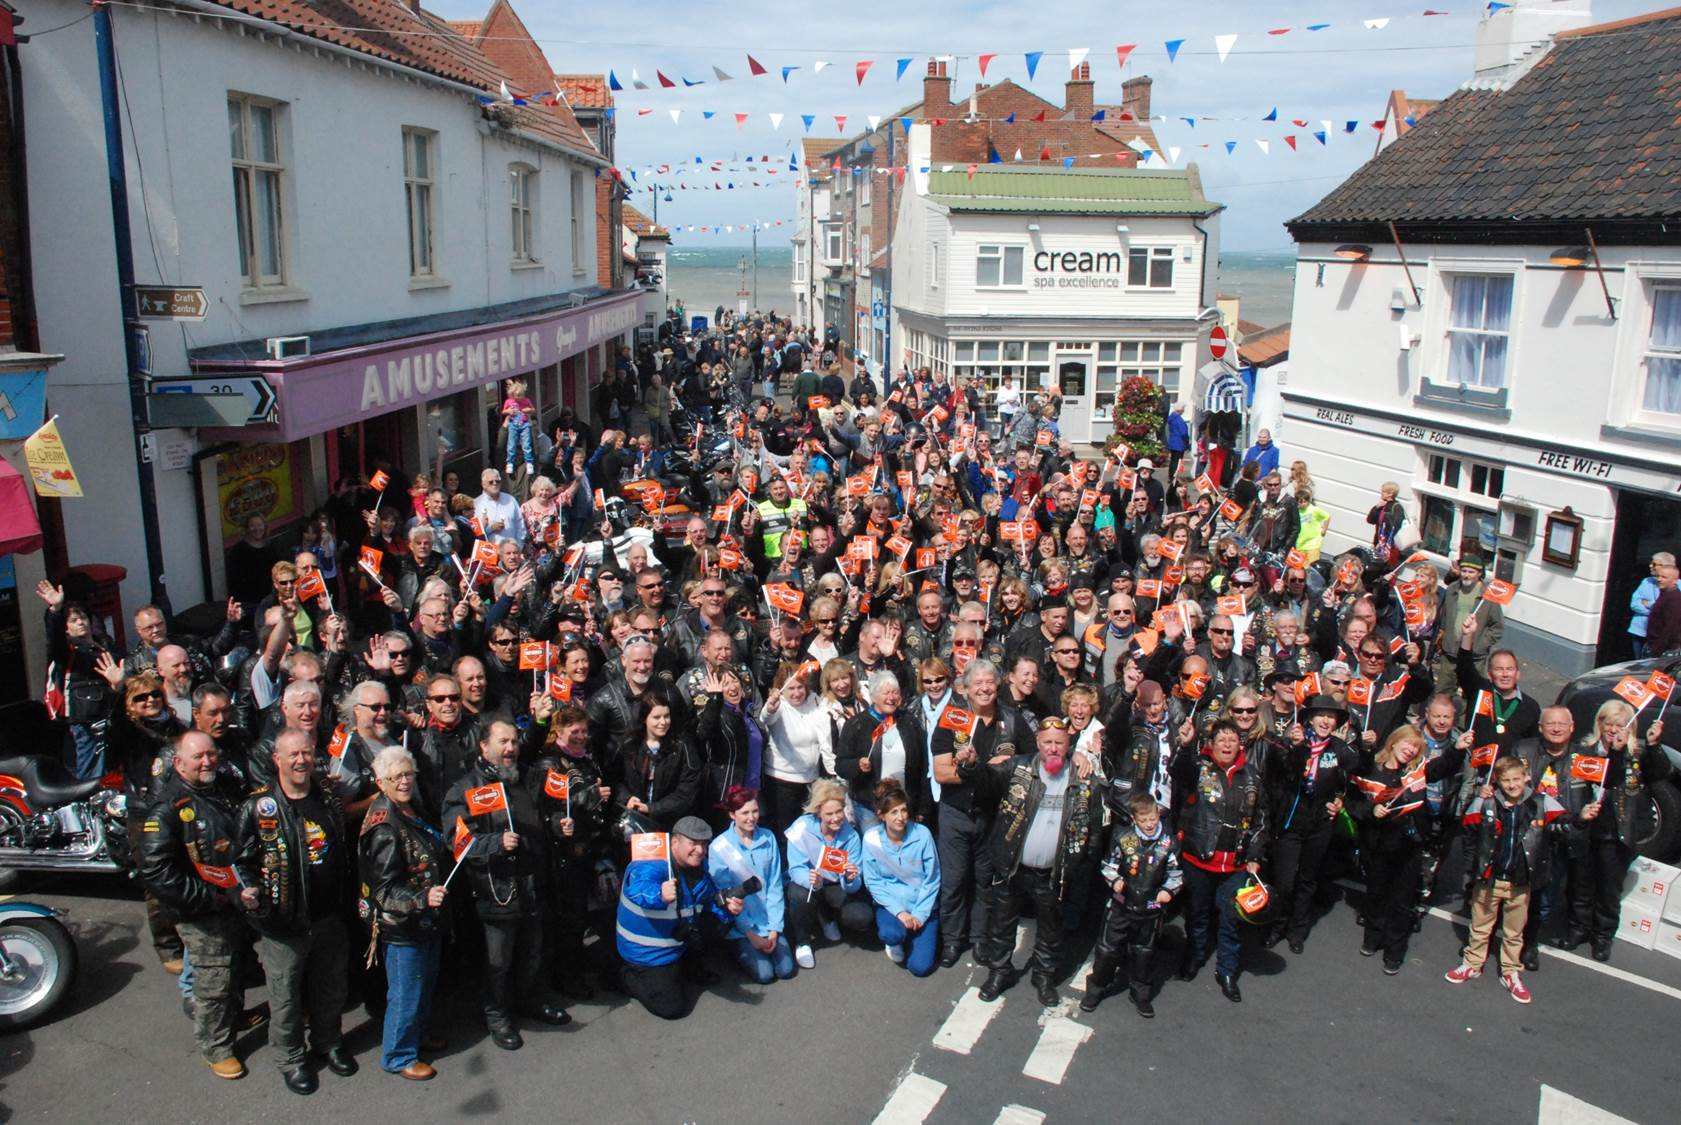 Rally attendees at Sheringham